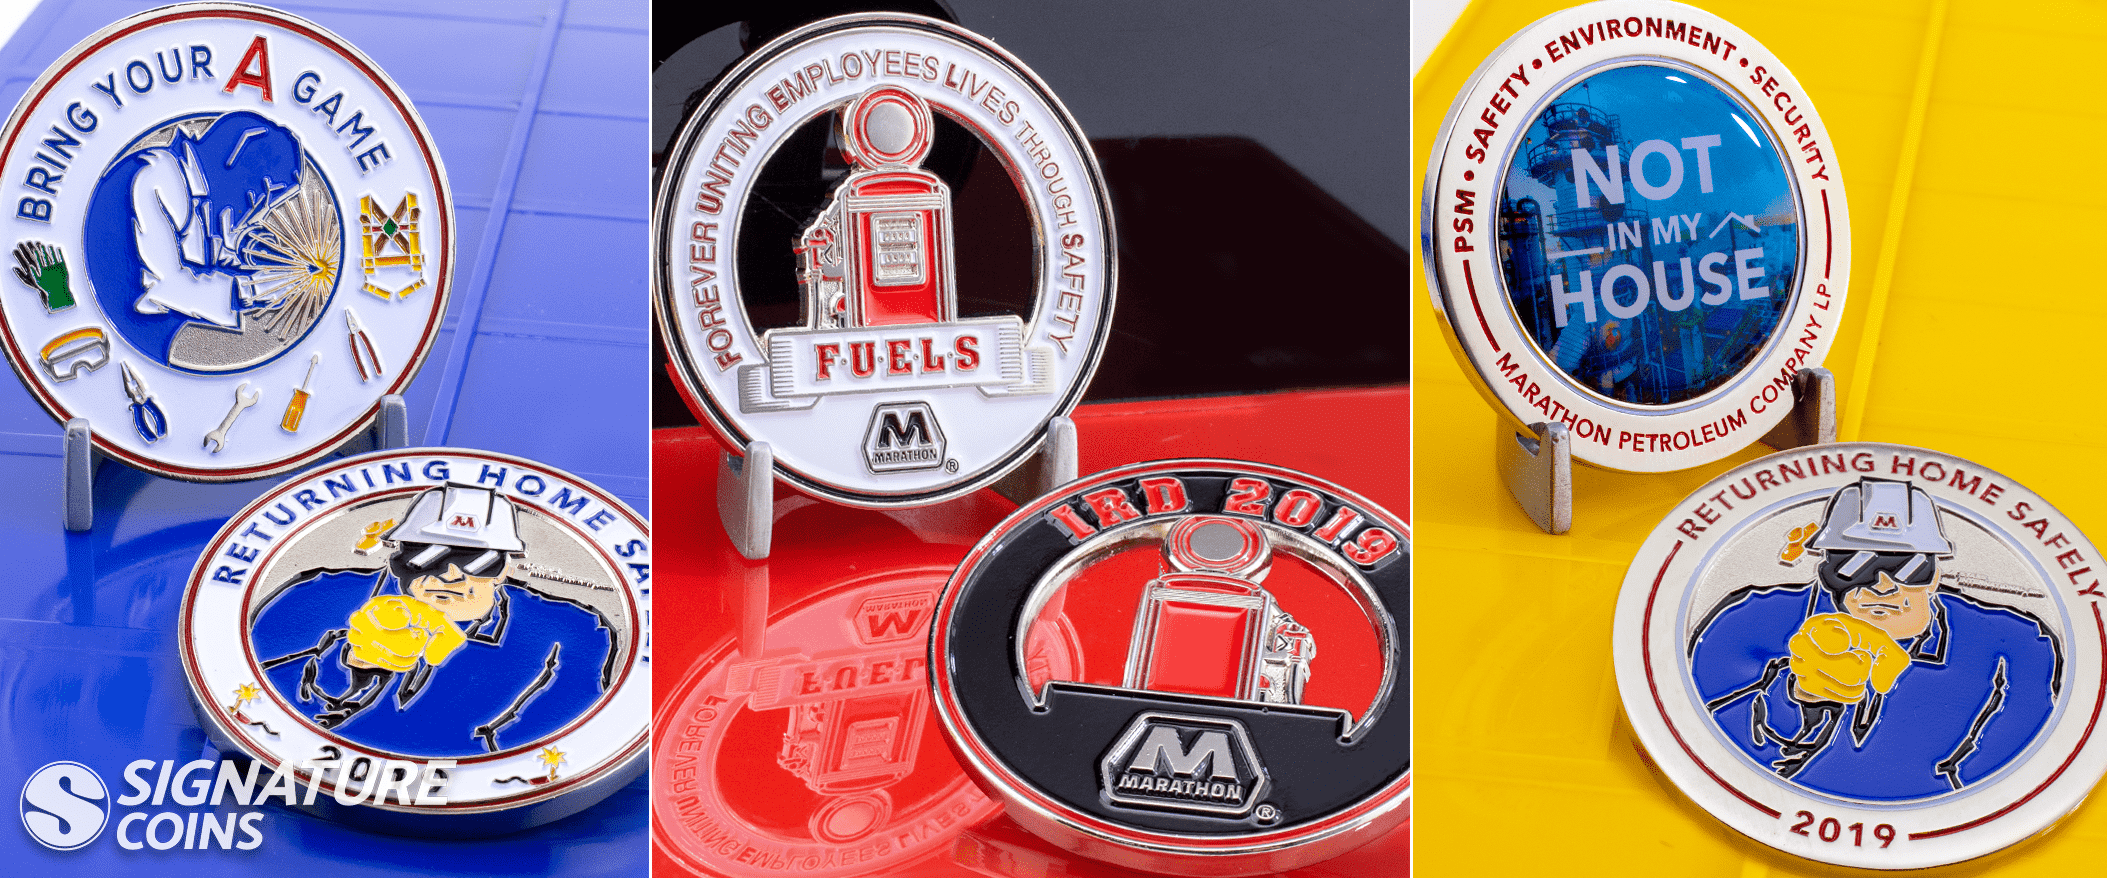 Safety Challenge Coins - by signature coins4